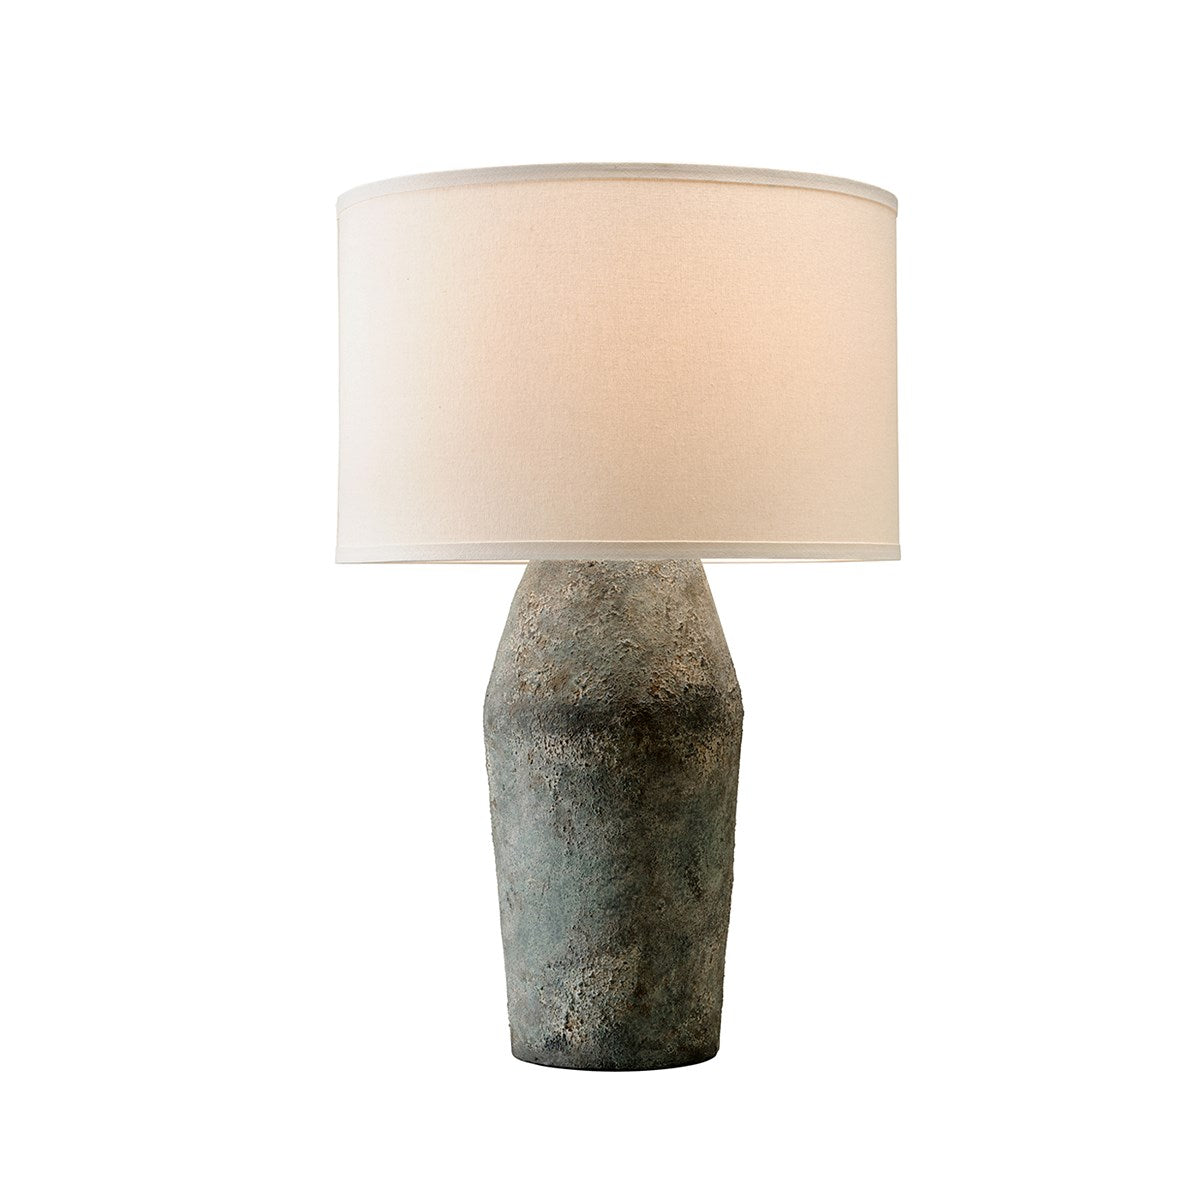 Artifact Grey Table Lamp - Rug & Weave